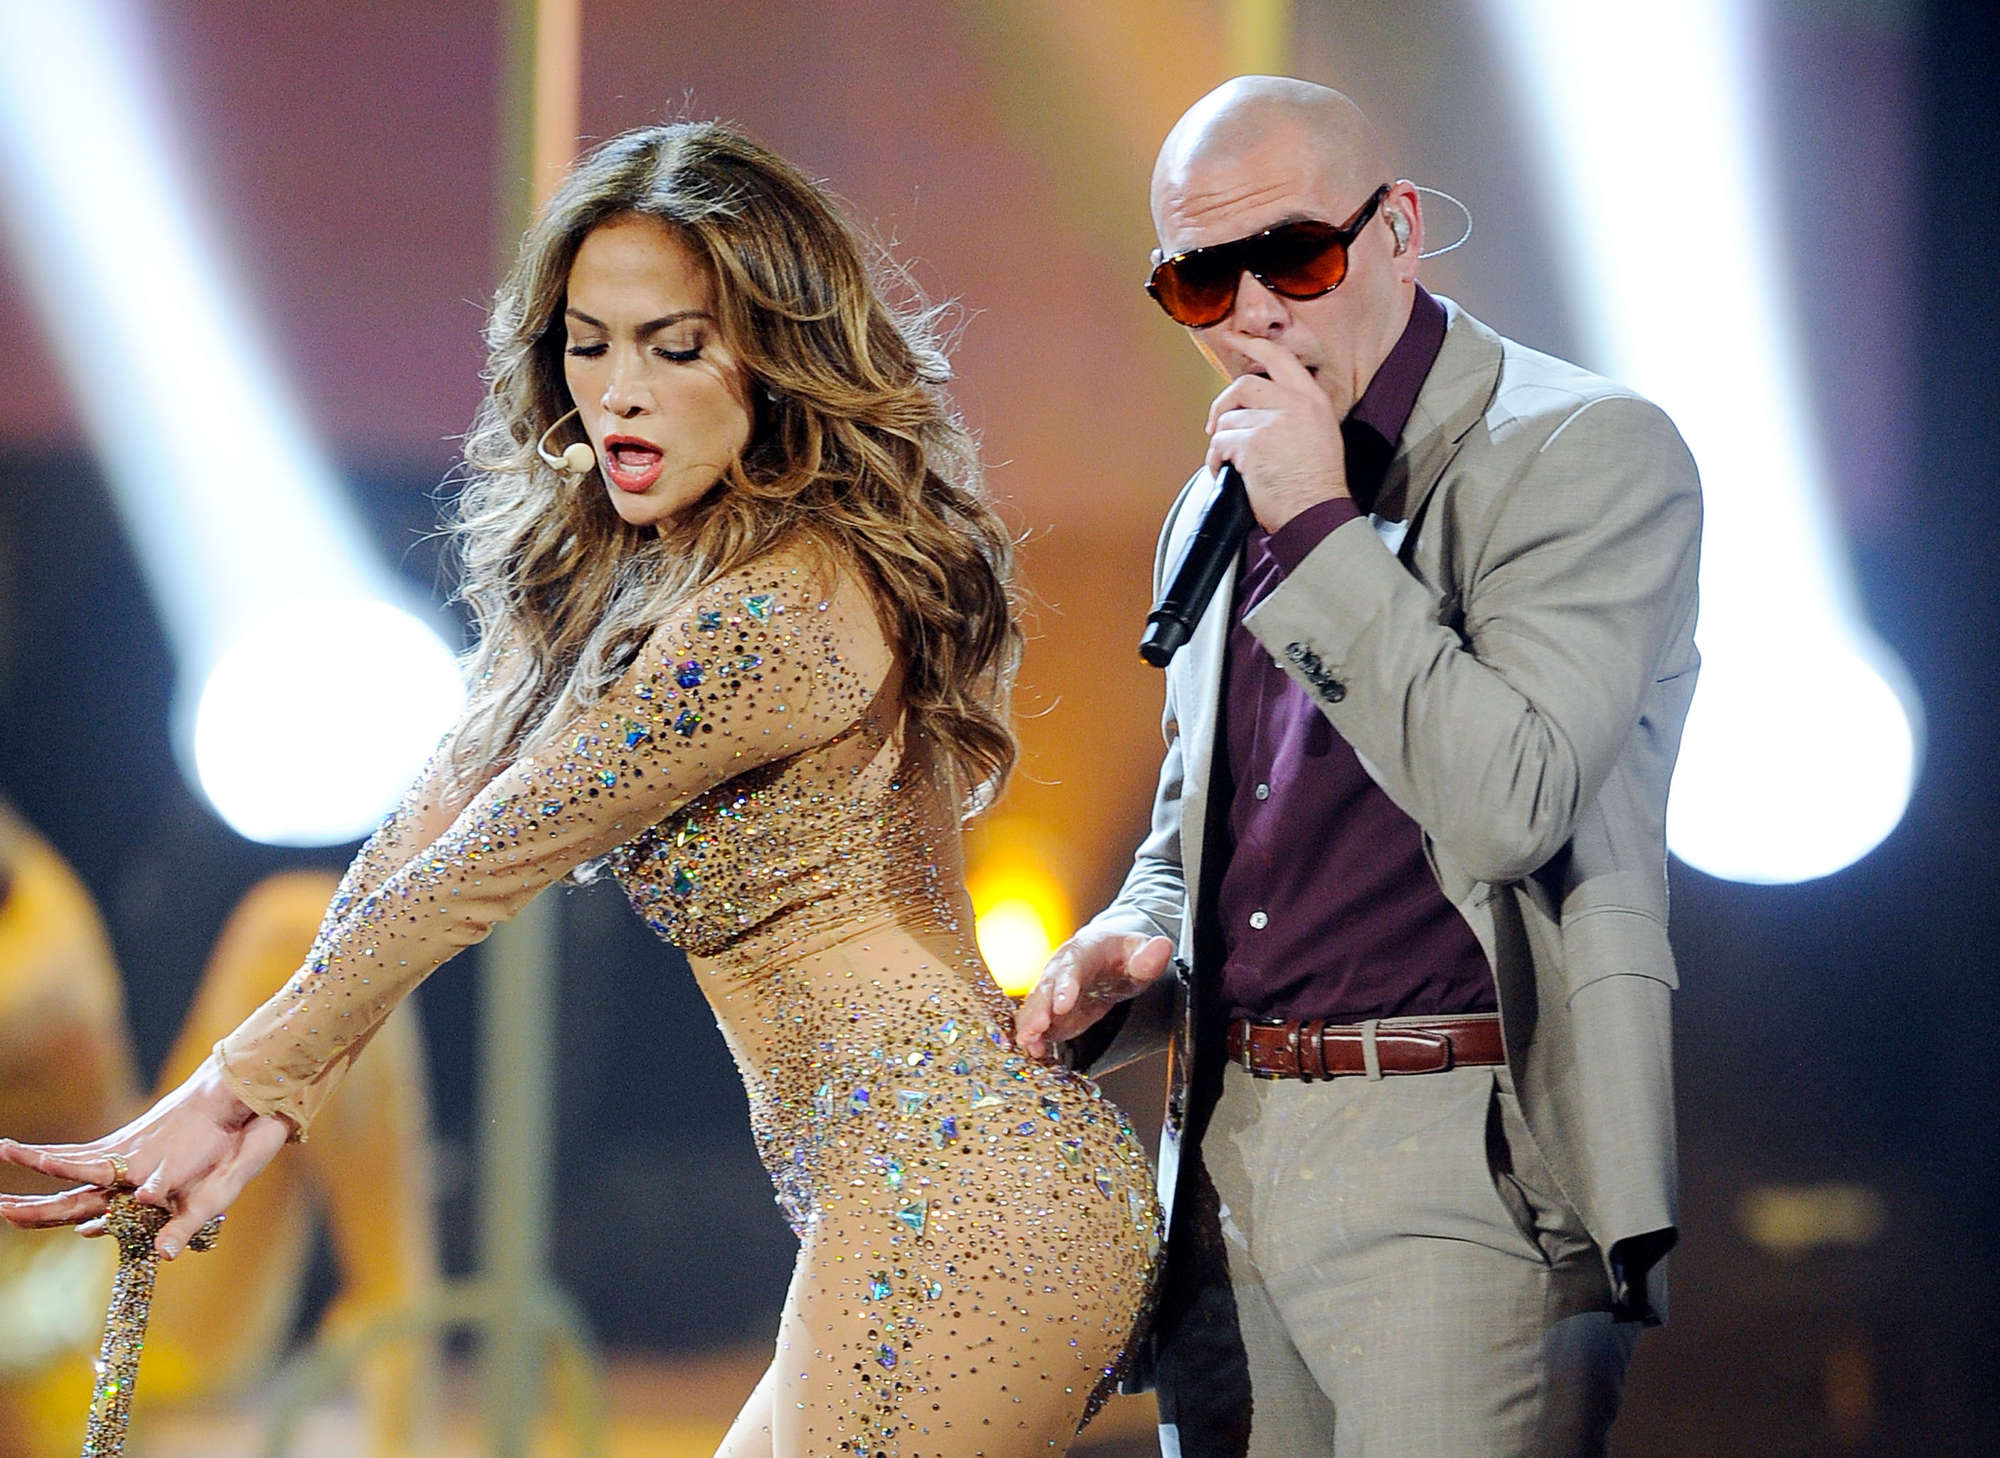 http://www.gotceleb.com/wp-content/uploads/celebrities/jennifer-lopez/performing-at-the-american-music-awards-in-la/Jennifer%20Lopez%20-%20Hot%20at%202011%20American%20Music%20Awards%20in%20LA-06.jpg